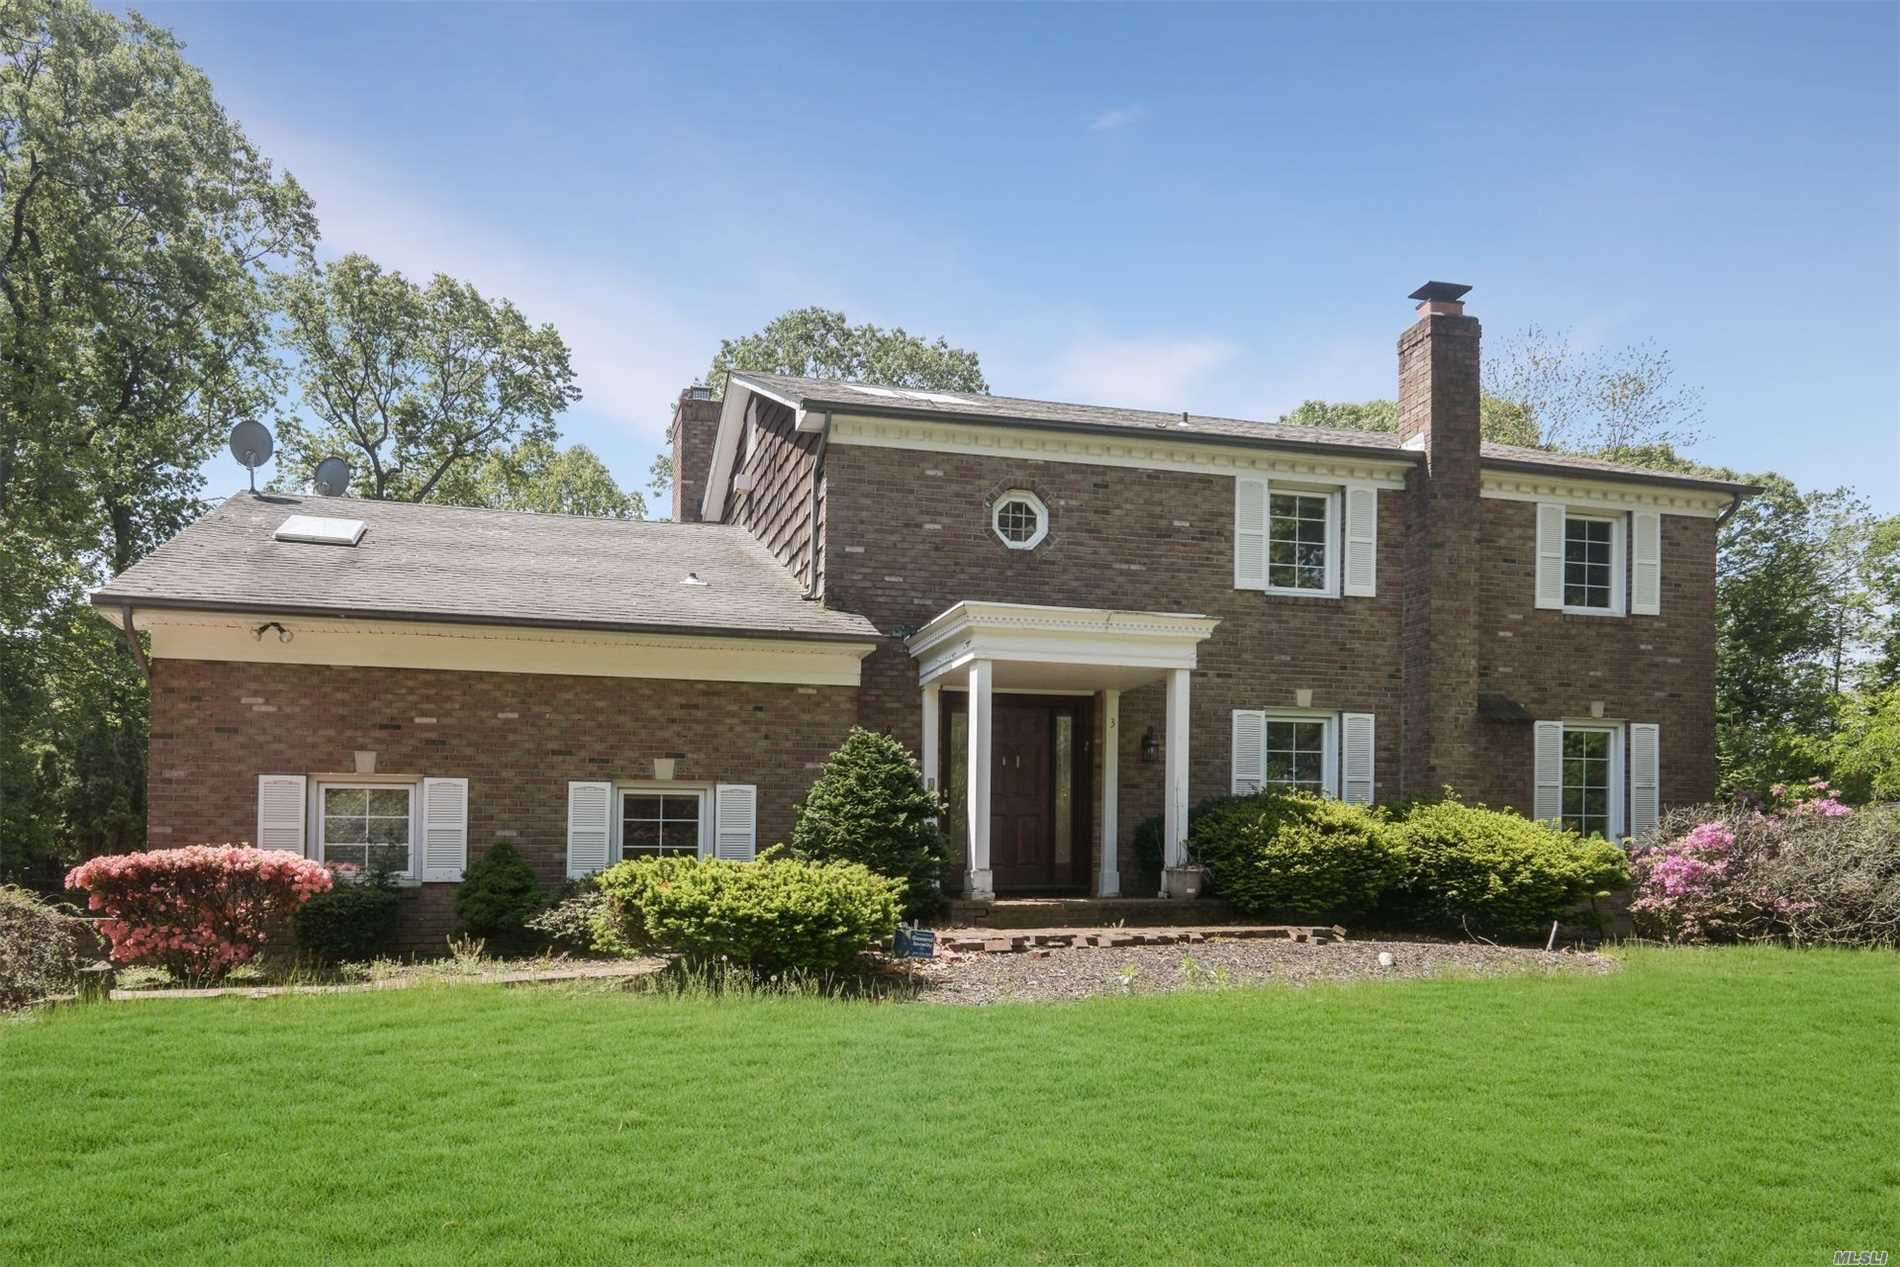 Large, Bright & Sunny Colonial On Park-Like Grounds! Half Hollow Hills Schools. Relax On The Deck Overlooking The Pool. Fireplaces, Wood Floors, Master Suite W/ Jacuzzi & So Much More. Full Basement & 2 Car Garage For Ample Storage. You Have To See This For Yourself!